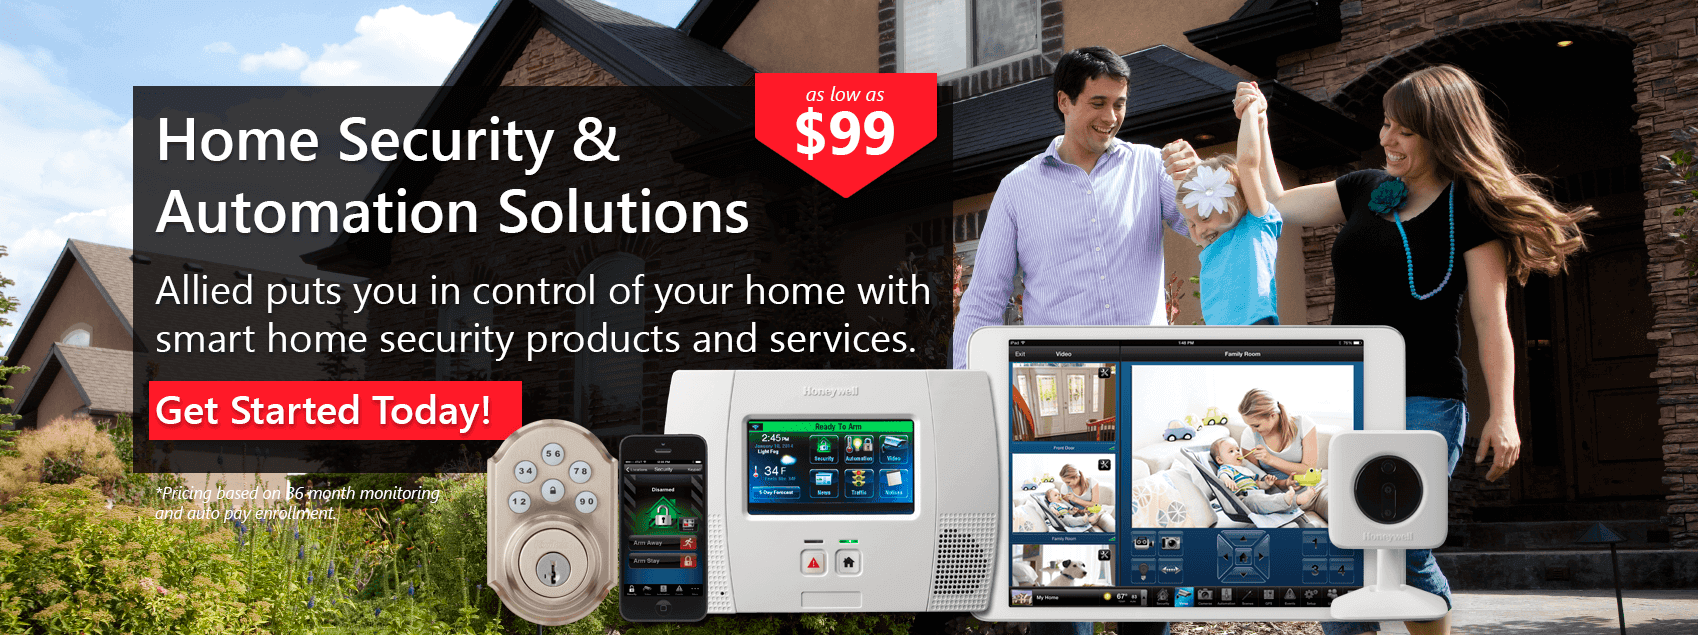 allied-home-automation-security-solutions1